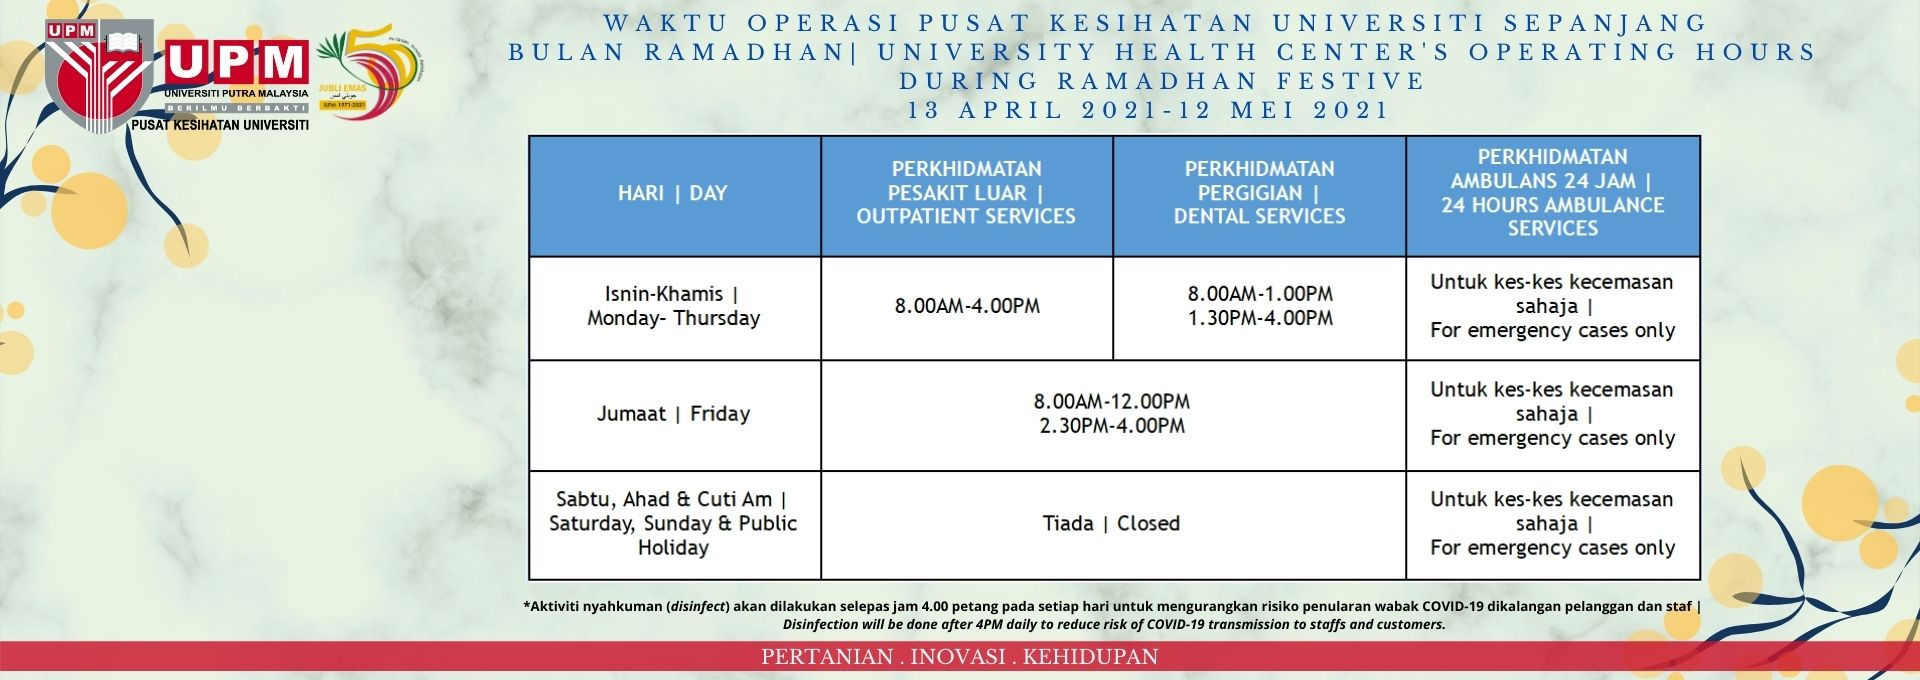 Operating Hours During Ramadhan Festive